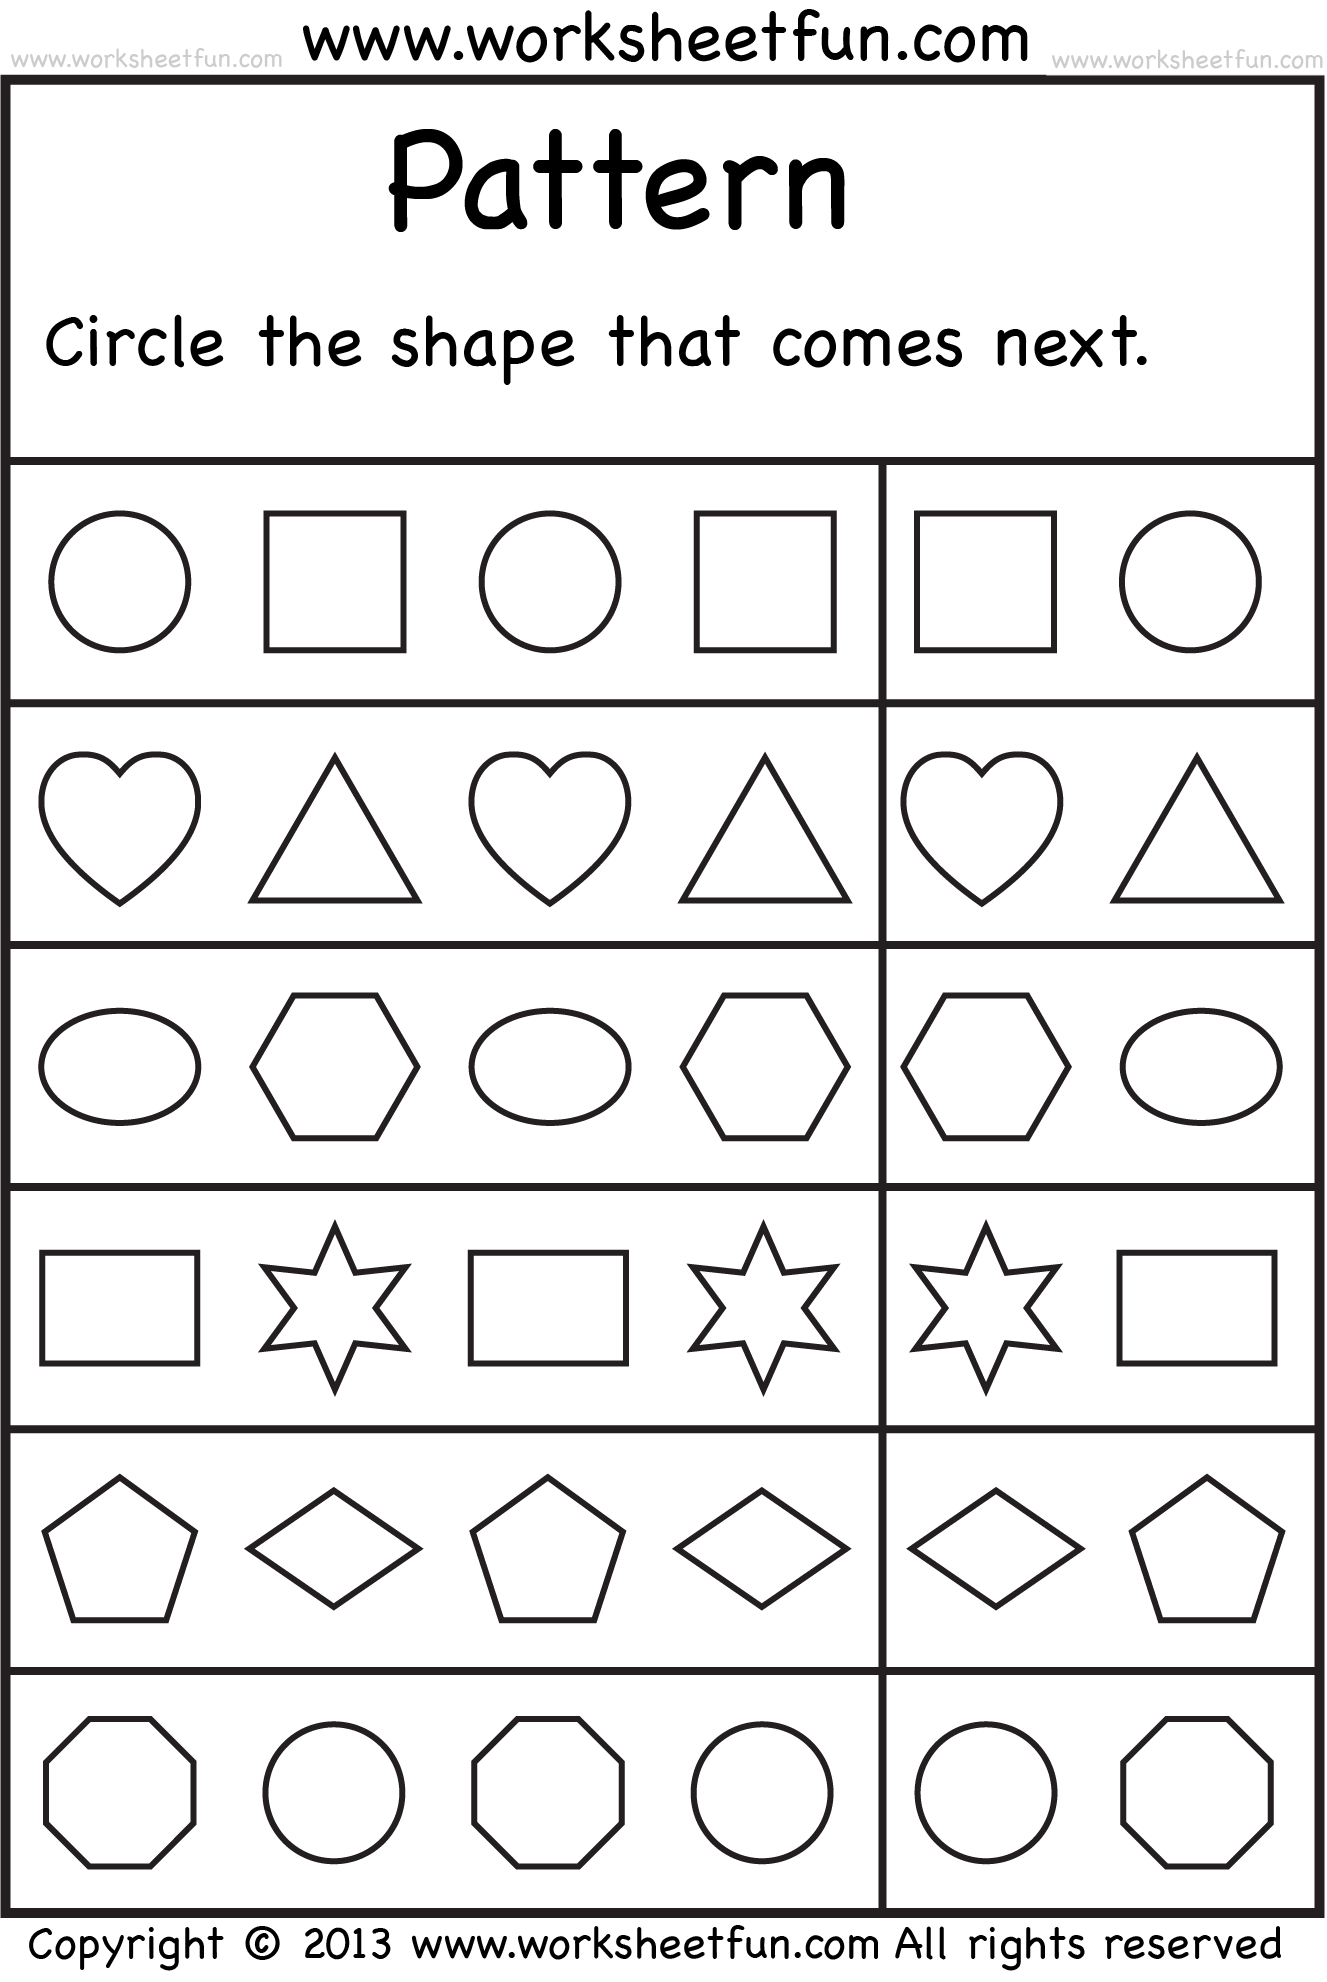 Weirdmailus  Fascinating  Images About School Worksheets On Pinterest  Number Words  With Handsome  Images About School Worksheets On Pinterest  Number Words Alphabet Worksheets And Free Printable Kindergarten Worksheets With Beauteous Volumes Of Prisms And Cylinders Worksheet Also Rewriting Equations And Formulas Worksheet In Addition Kumon Worksheets For Sale And Reading Worksheets For Nd Graders As Well As Edmark Reading Program Worksheets Additionally Vocabulary Worksheet Pdf From Pinterestcom With Weirdmailus  Handsome  Images About School Worksheets On Pinterest  Number Words  With Beauteous  Images About School Worksheets On Pinterest  Number Words Alphabet Worksheets And Free Printable Kindergarten Worksheets And Fascinating Volumes Of Prisms And Cylinders Worksheet Also Rewriting Equations And Formulas Worksheet In Addition Kumon Worksheets For Sale From Pinterestcom